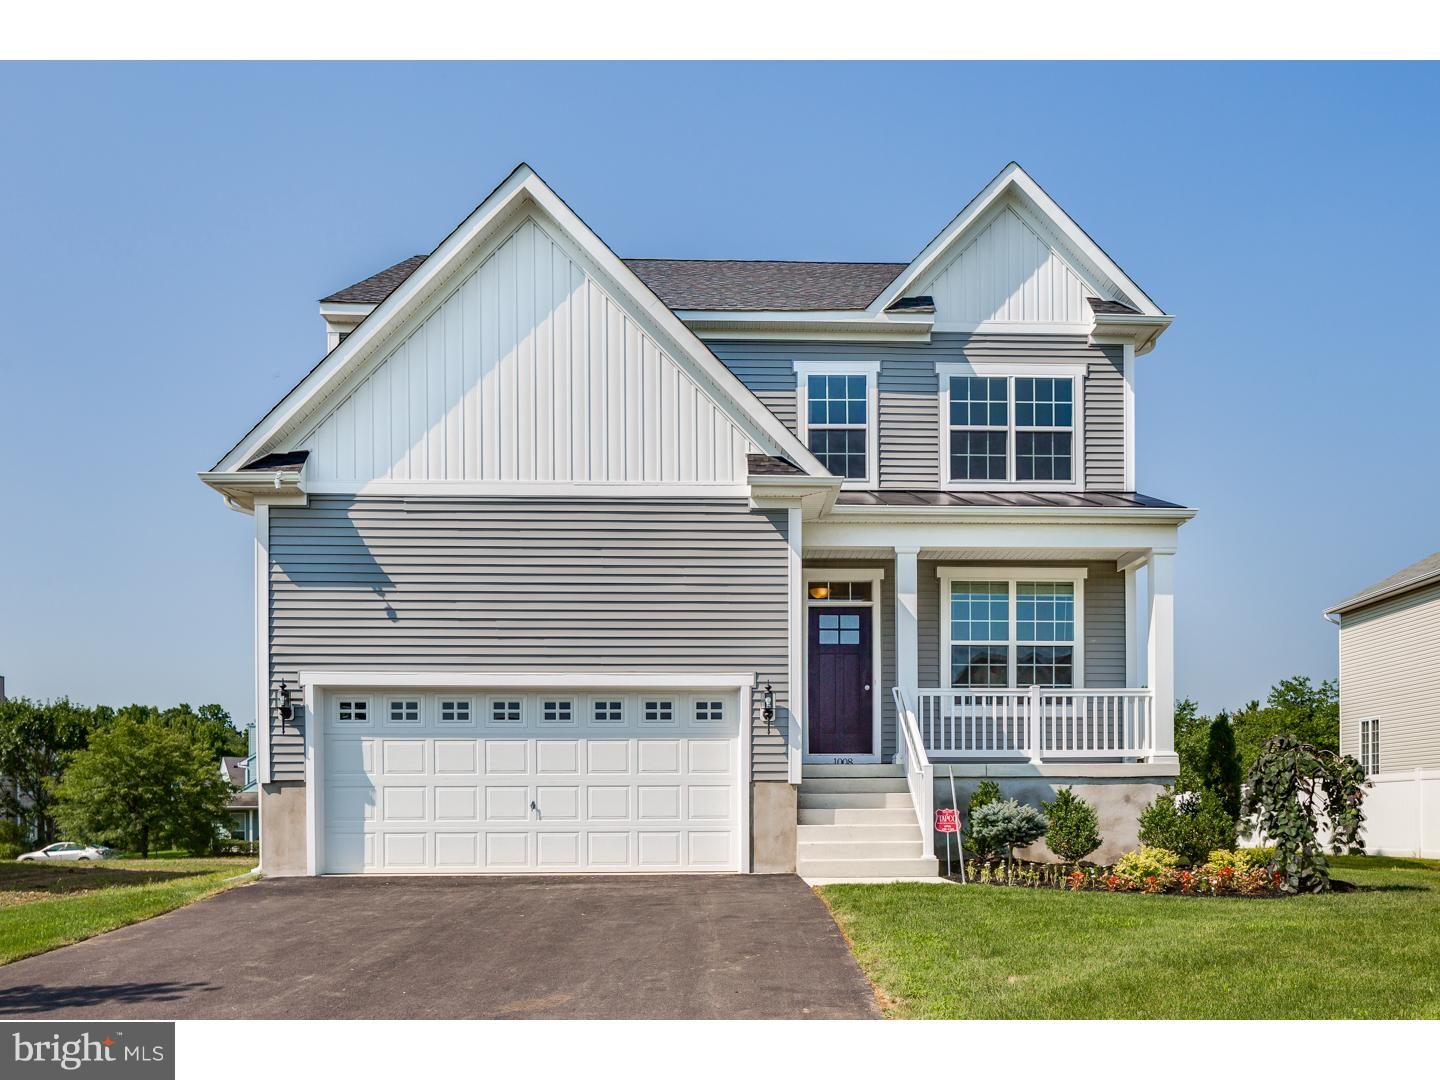 1009 SHIRA COURT, WEST DEPTFORD TWP, NJ 08086